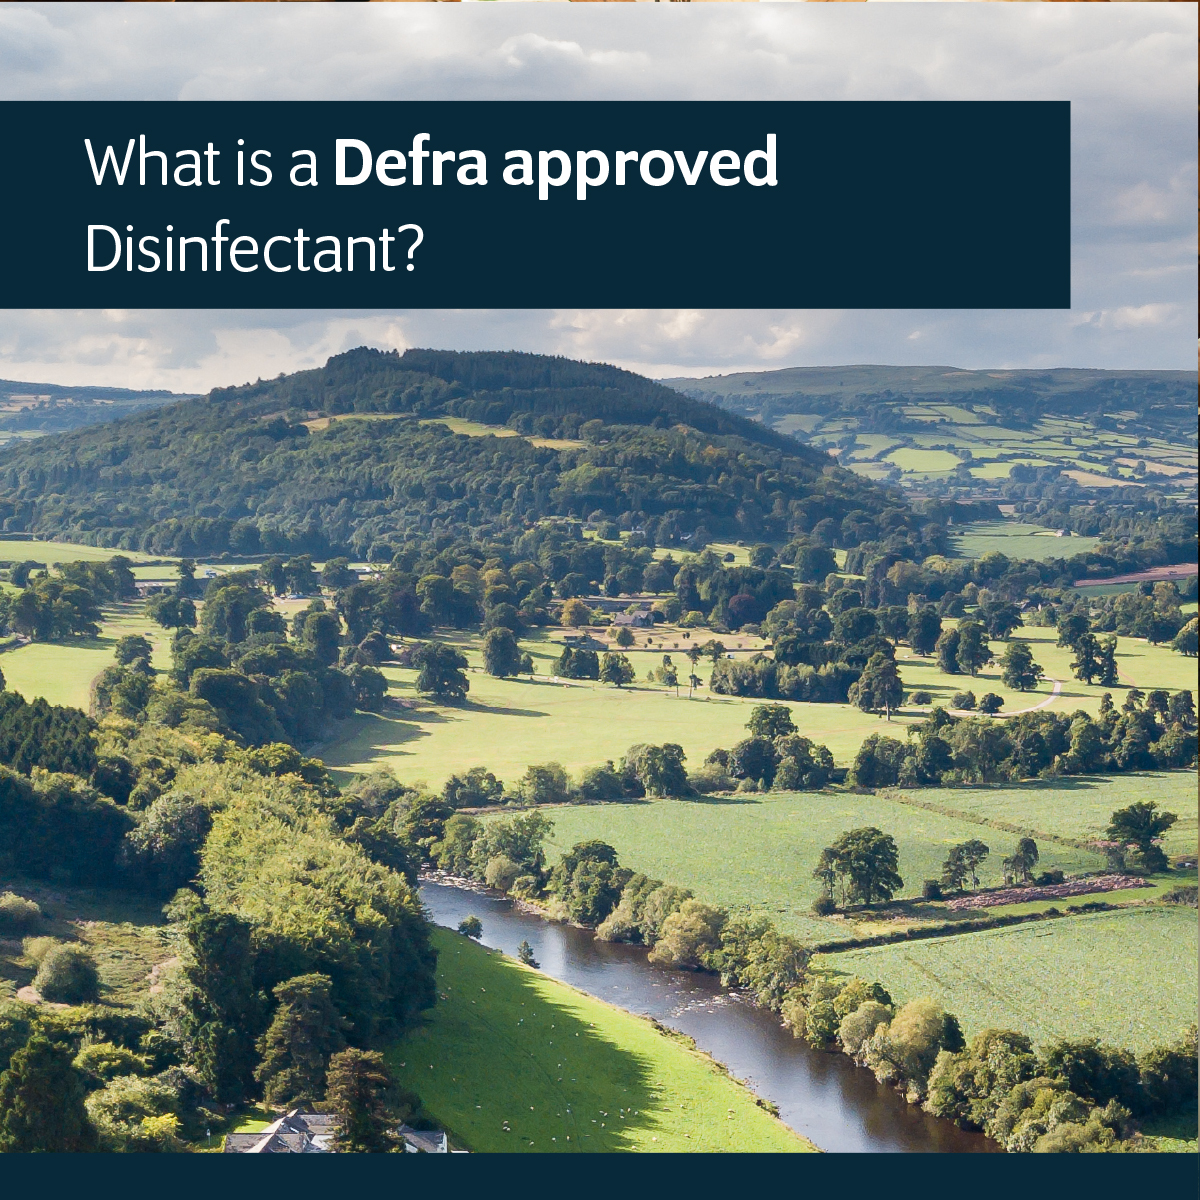 What is a Defra Approved Disinfectant?